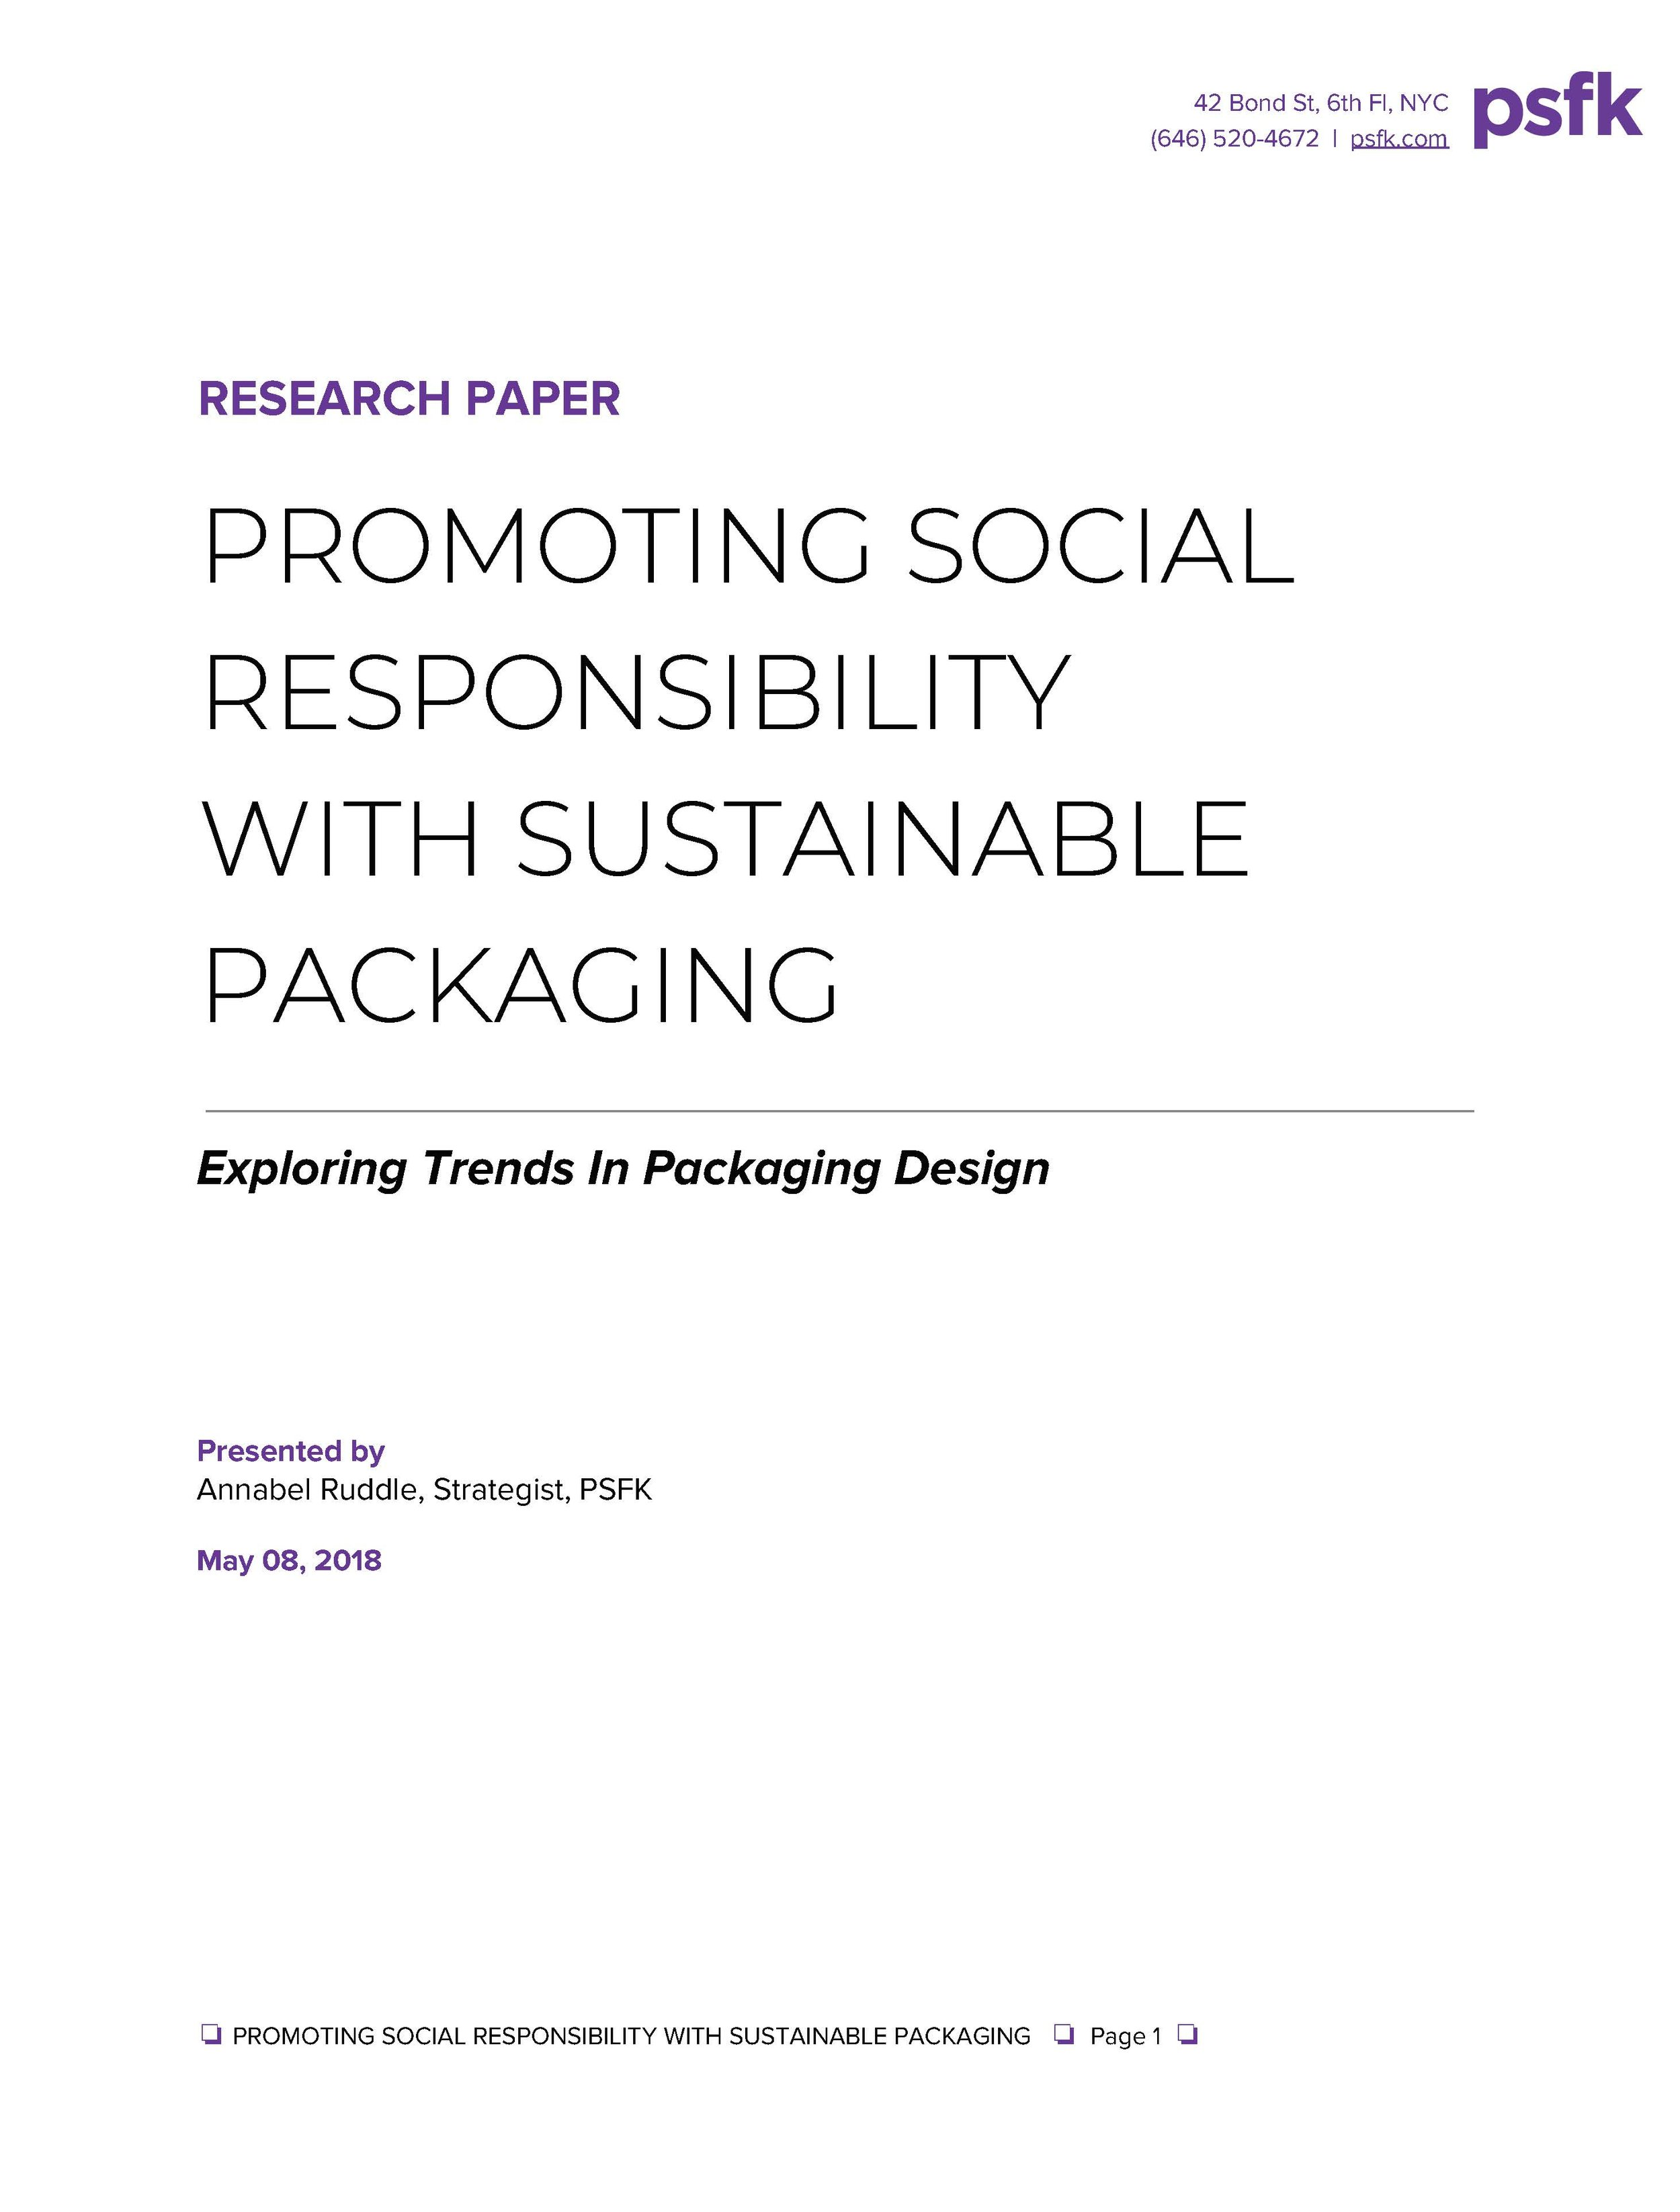 PSFK_Paper_Promoting_Social_Responsibility_With_Sustainable _Packaging_Page_1.jpg